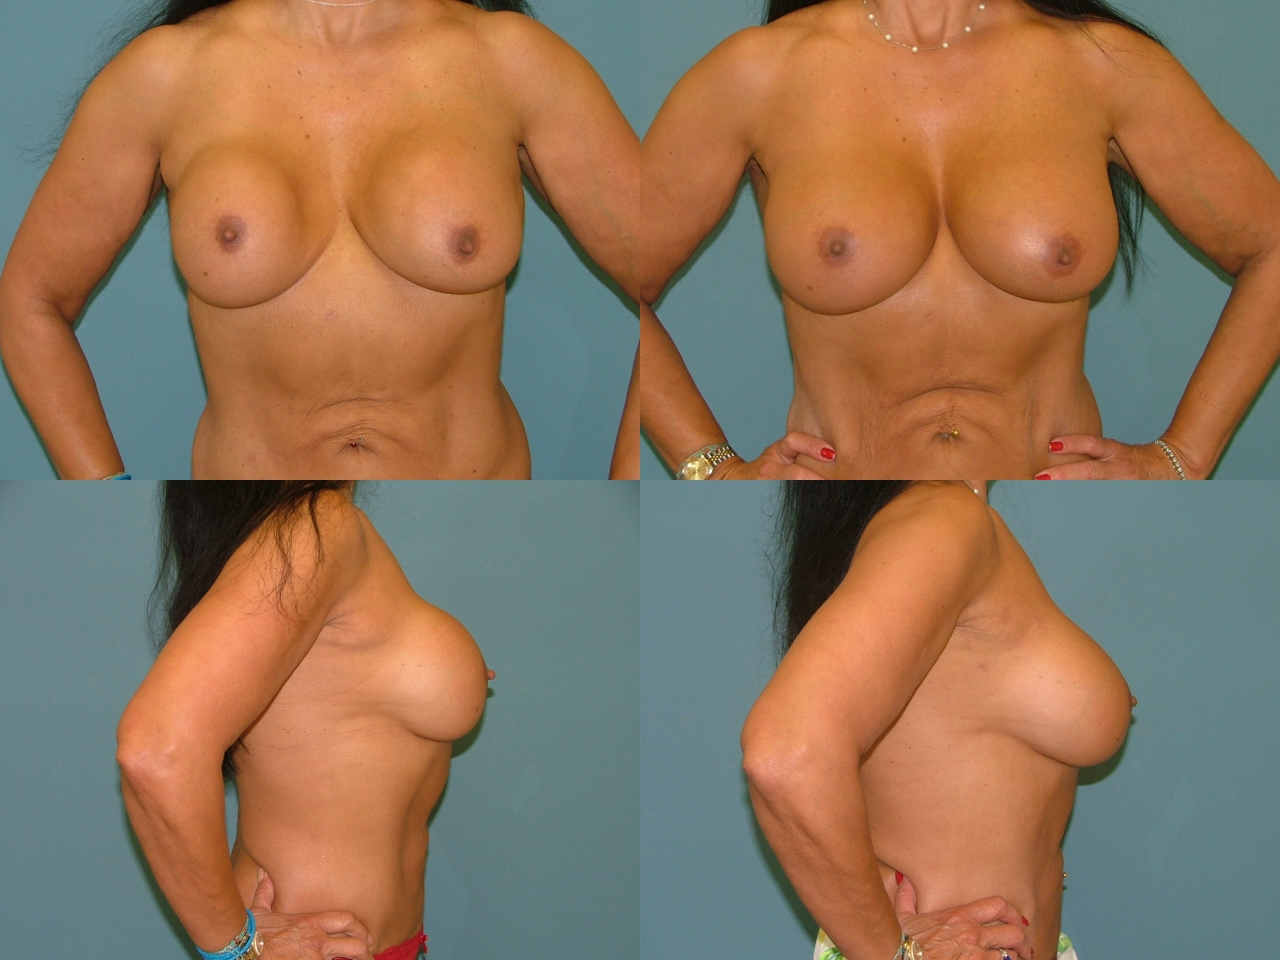 Breast Augmentation Revision Repair